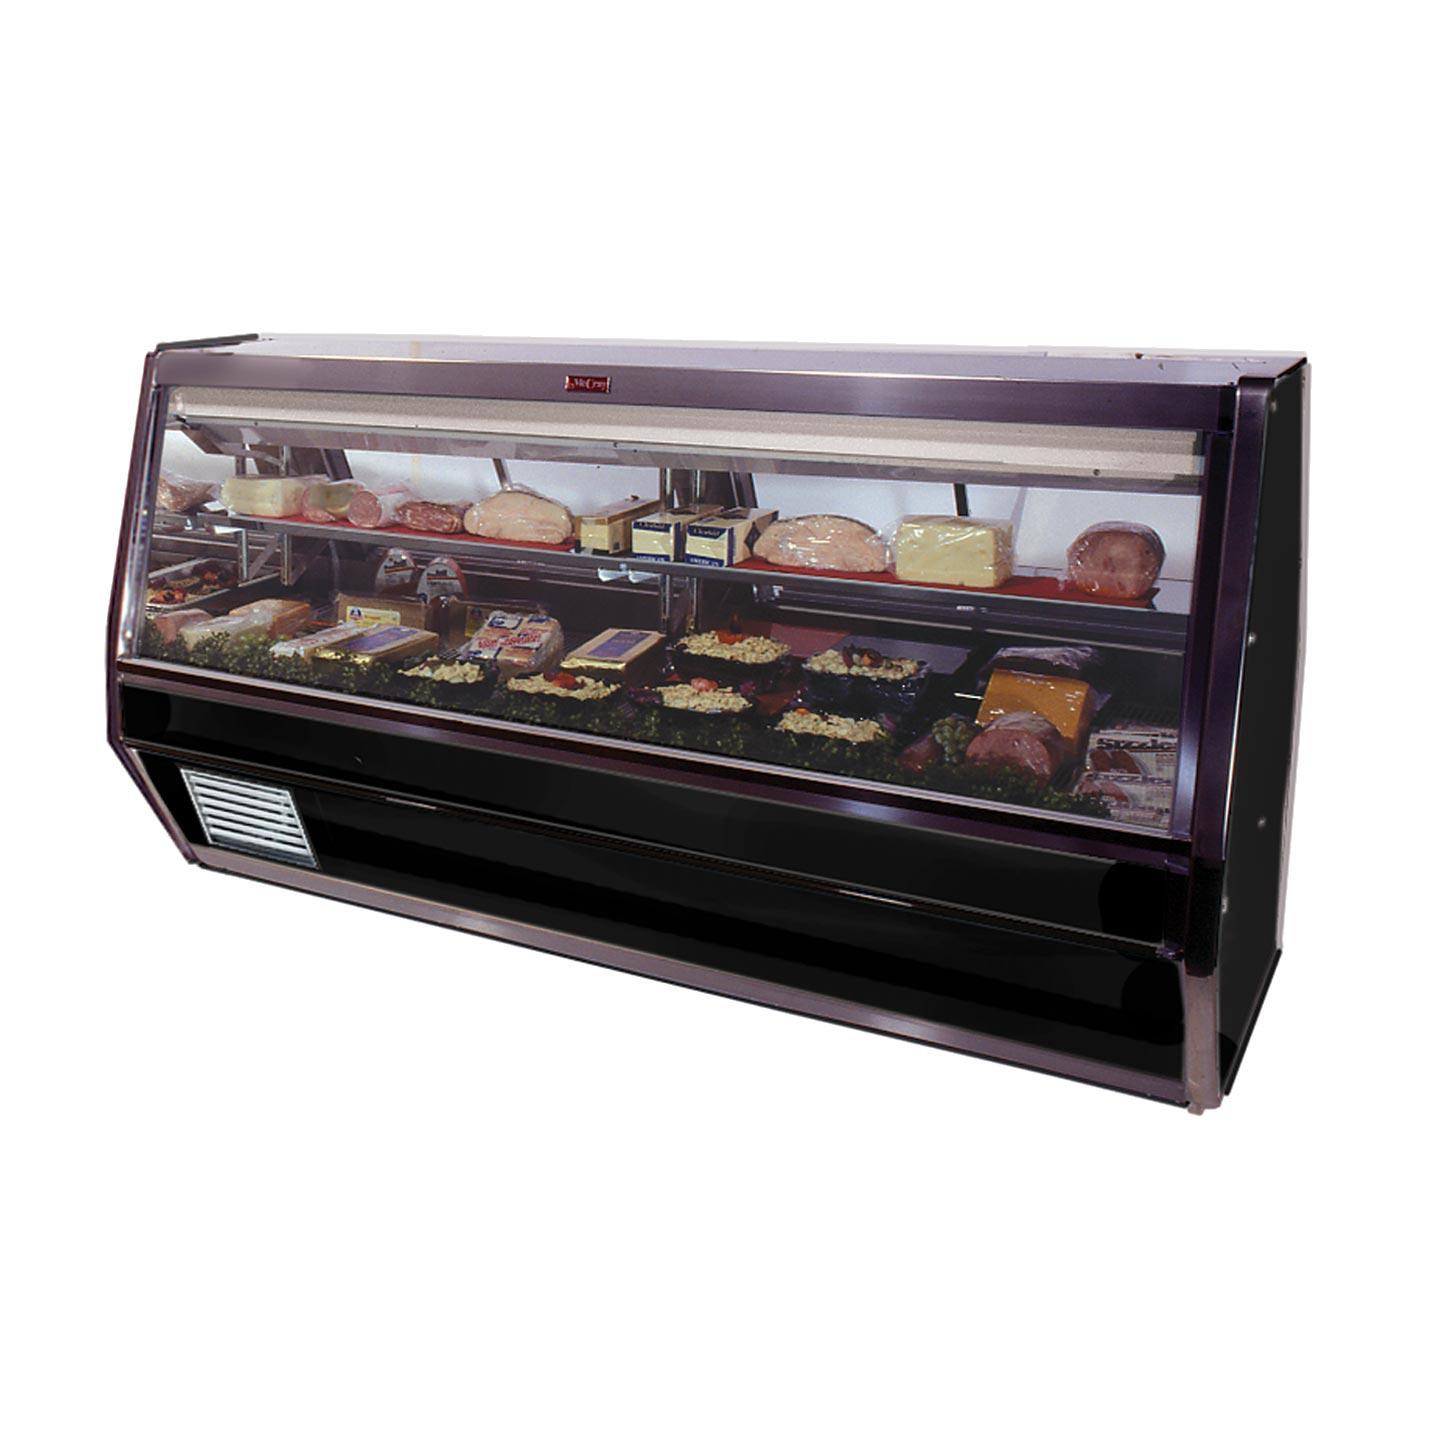 Howard-McCray SC-CDS40E-12-BE-LED display case, refrigerated deli